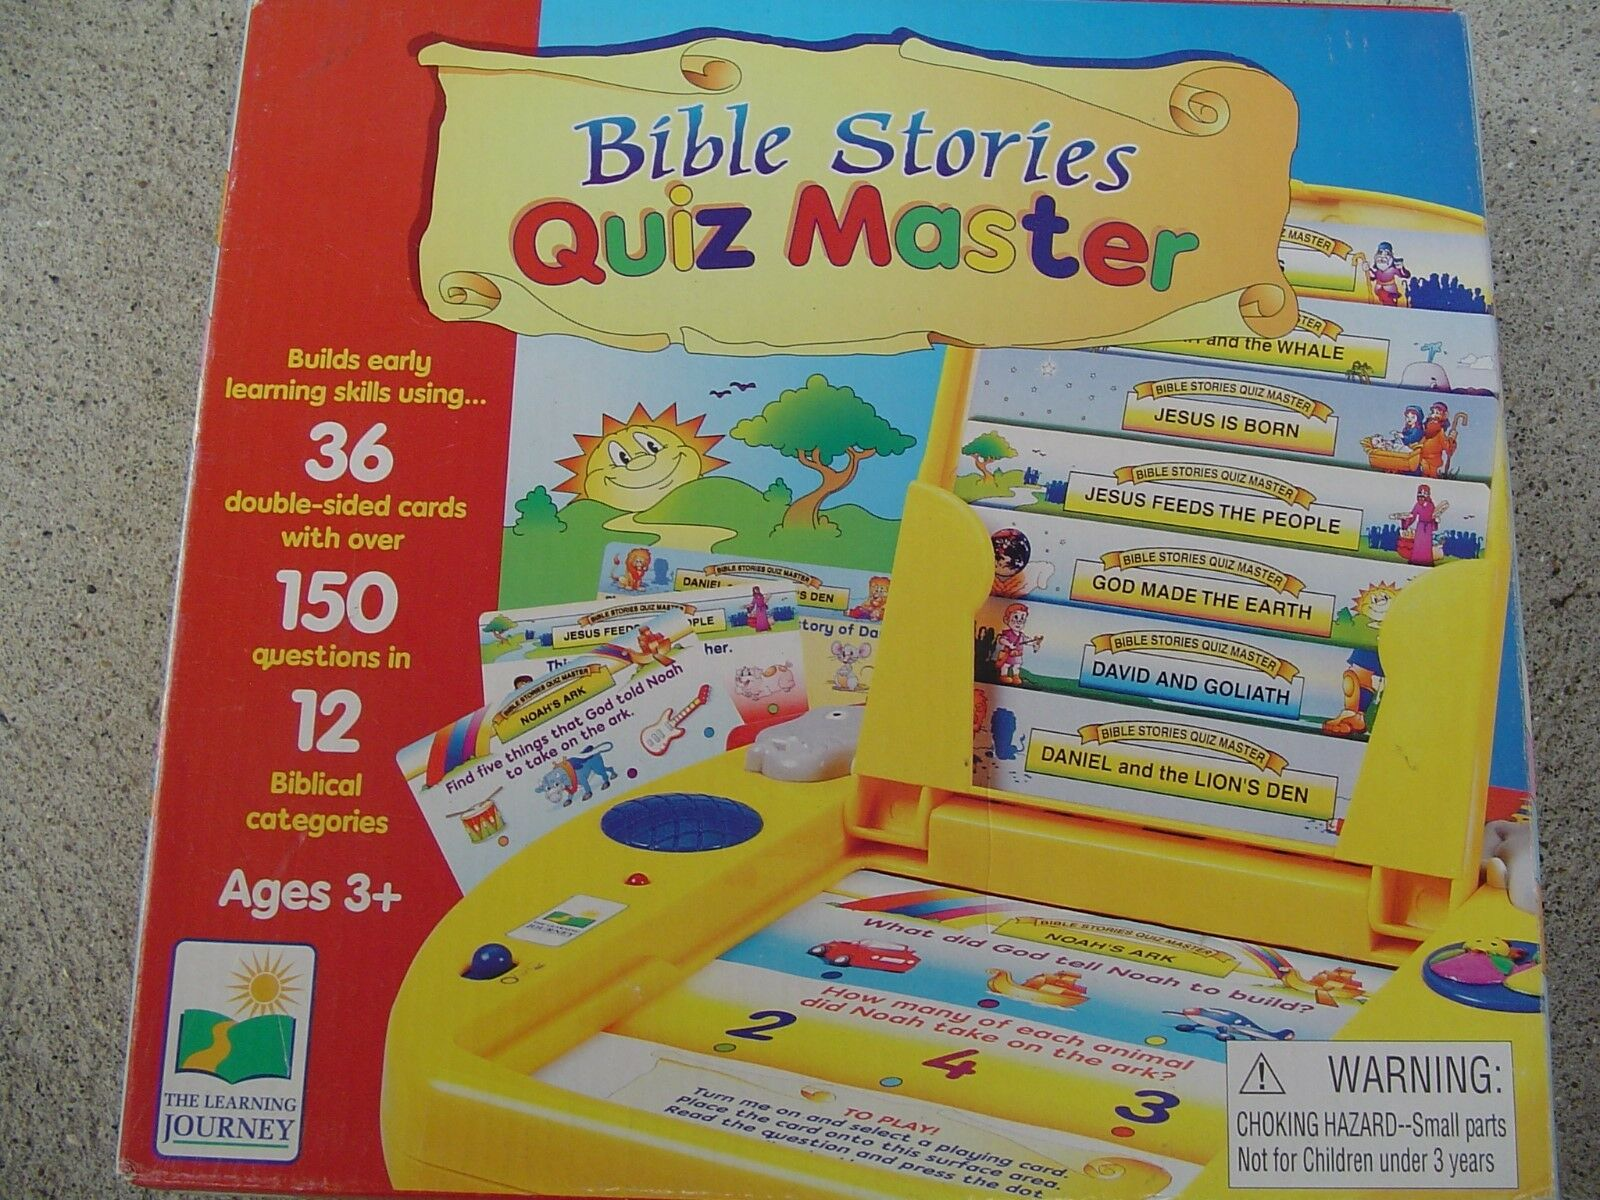 THE LEARNING JOURNEY INTERNATIONAL BIBLE STORIES QUIZ MASTER